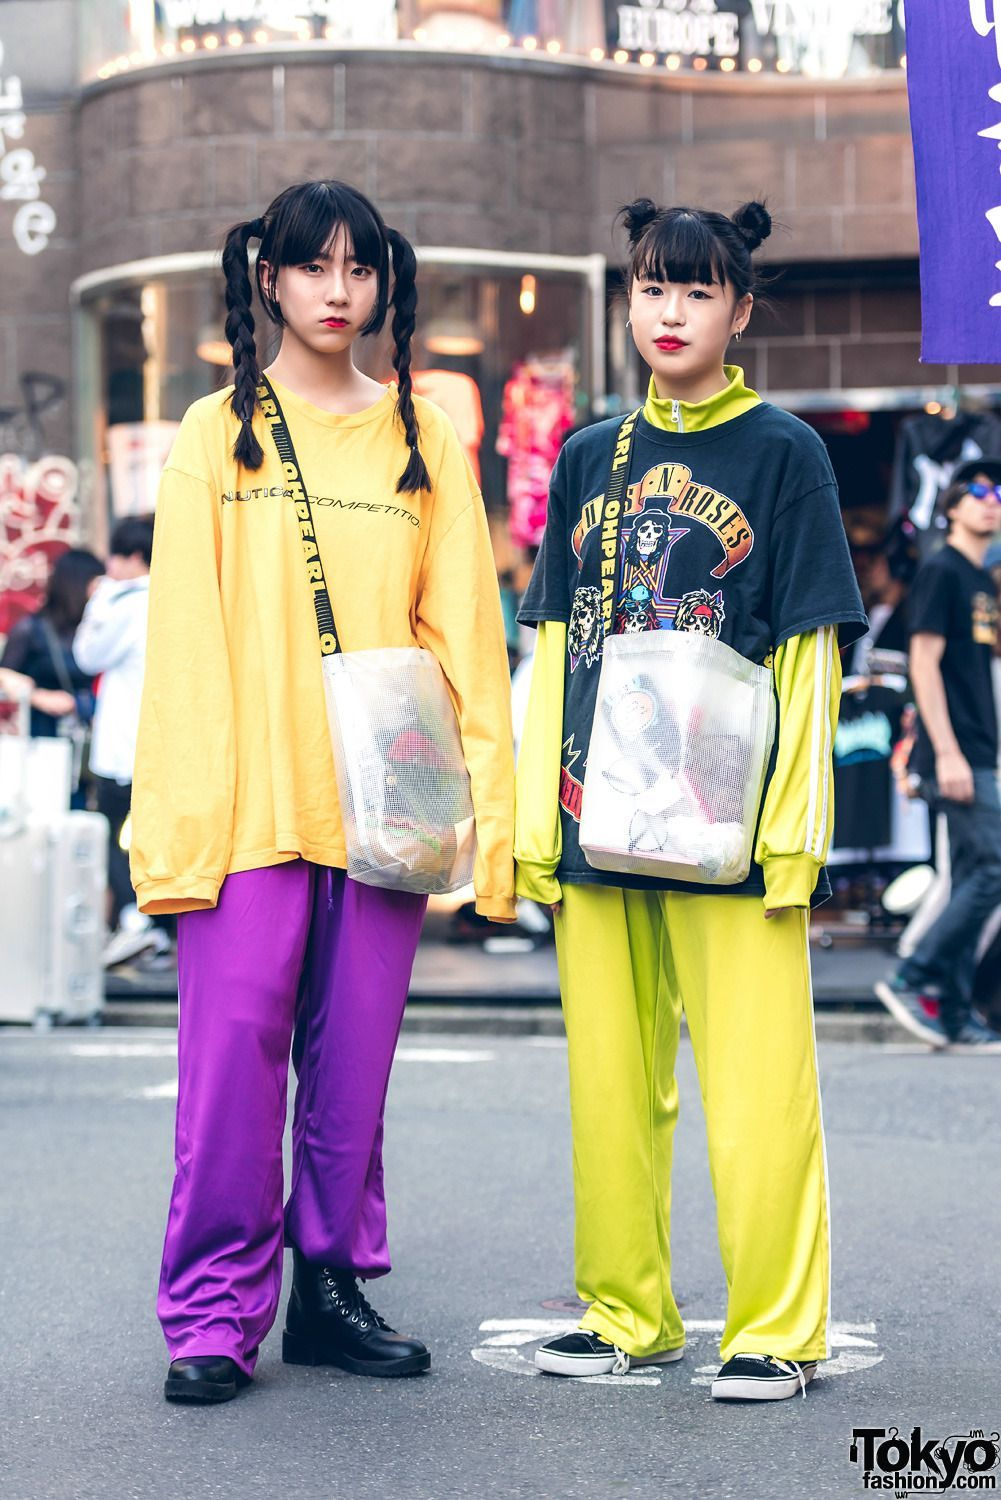 """tokyo-fashion: """"16-year-old Japanese high school students ..."""